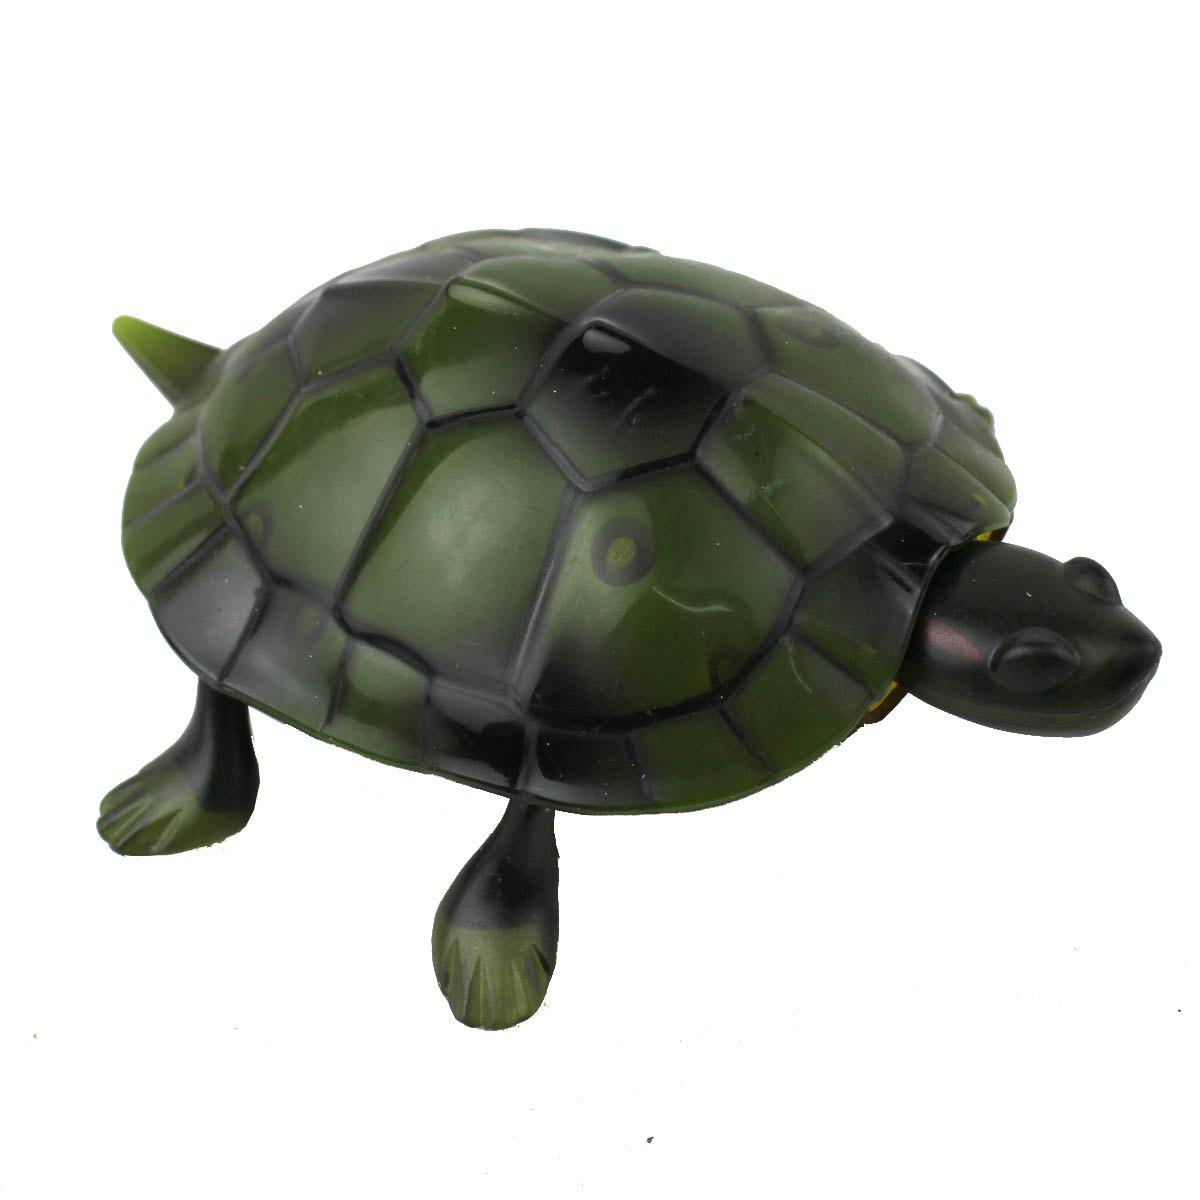 Infrared Remote Control Simulation Brazil Turtle Toy Animal Model  infrared remote control tarantula with light trick toy